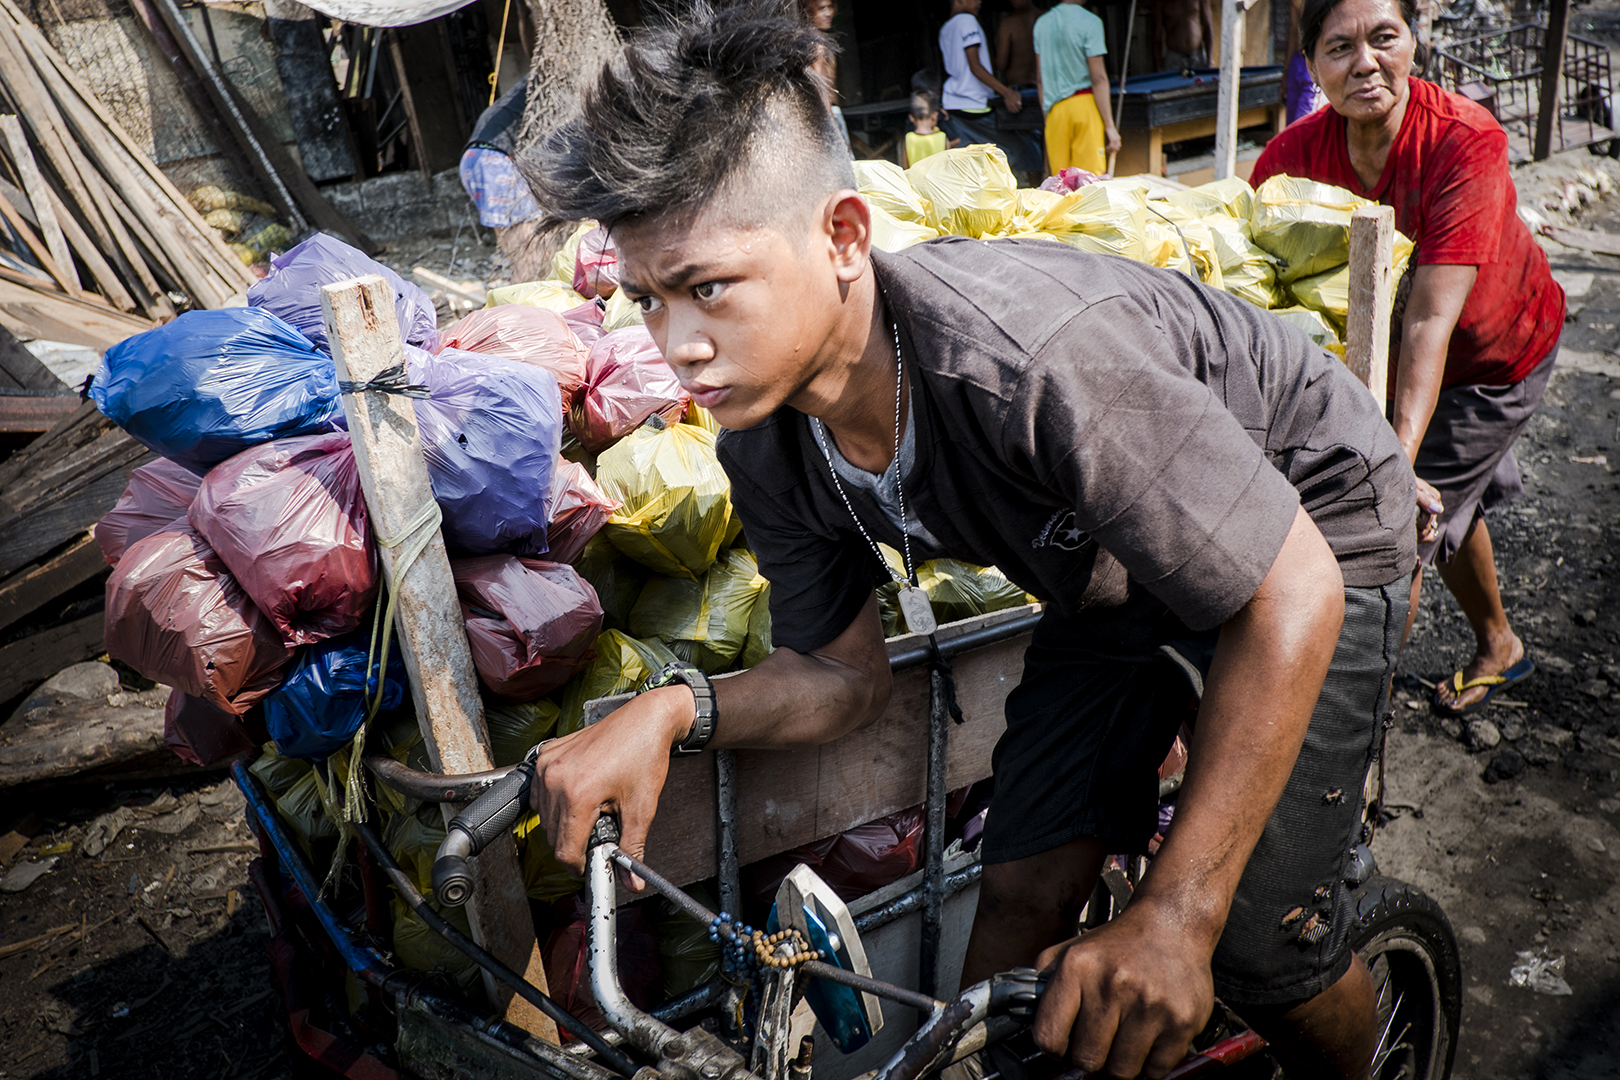 Young boy from the Ulingan community is transporting bags of charcoal to a local market where it is going to be sold. Most of young employees of the factories are being paid only when the charcoal is sold and when the owner of a local business is back the money that he or she invested in the wood used for the production. Malabon, Philippines, 2017